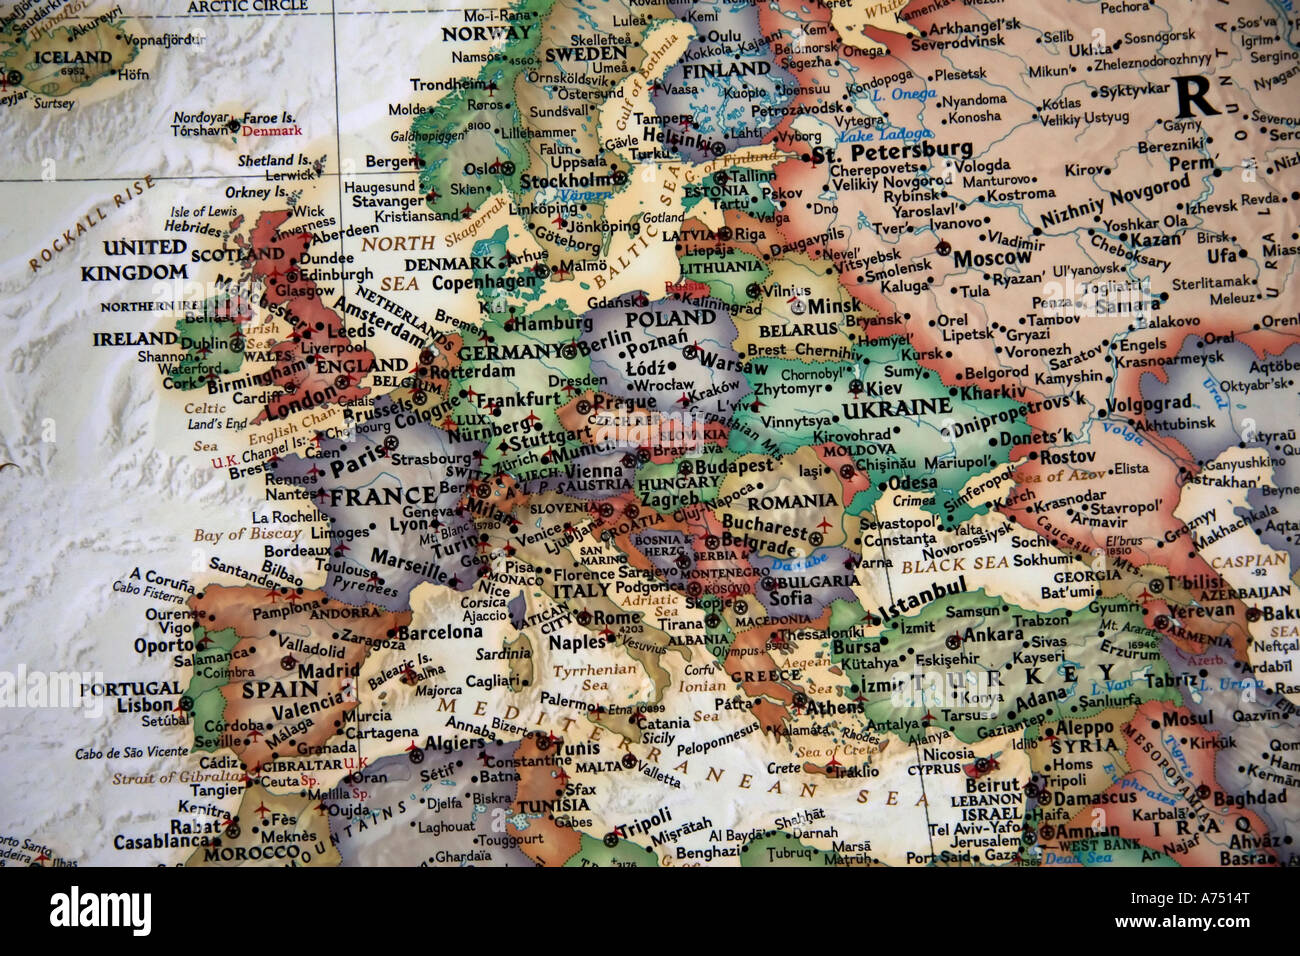 A close view of europe and the middle east from a high quality a close view of europe and the middle east from a high quality detailed world map gumiabroncs Choice Image